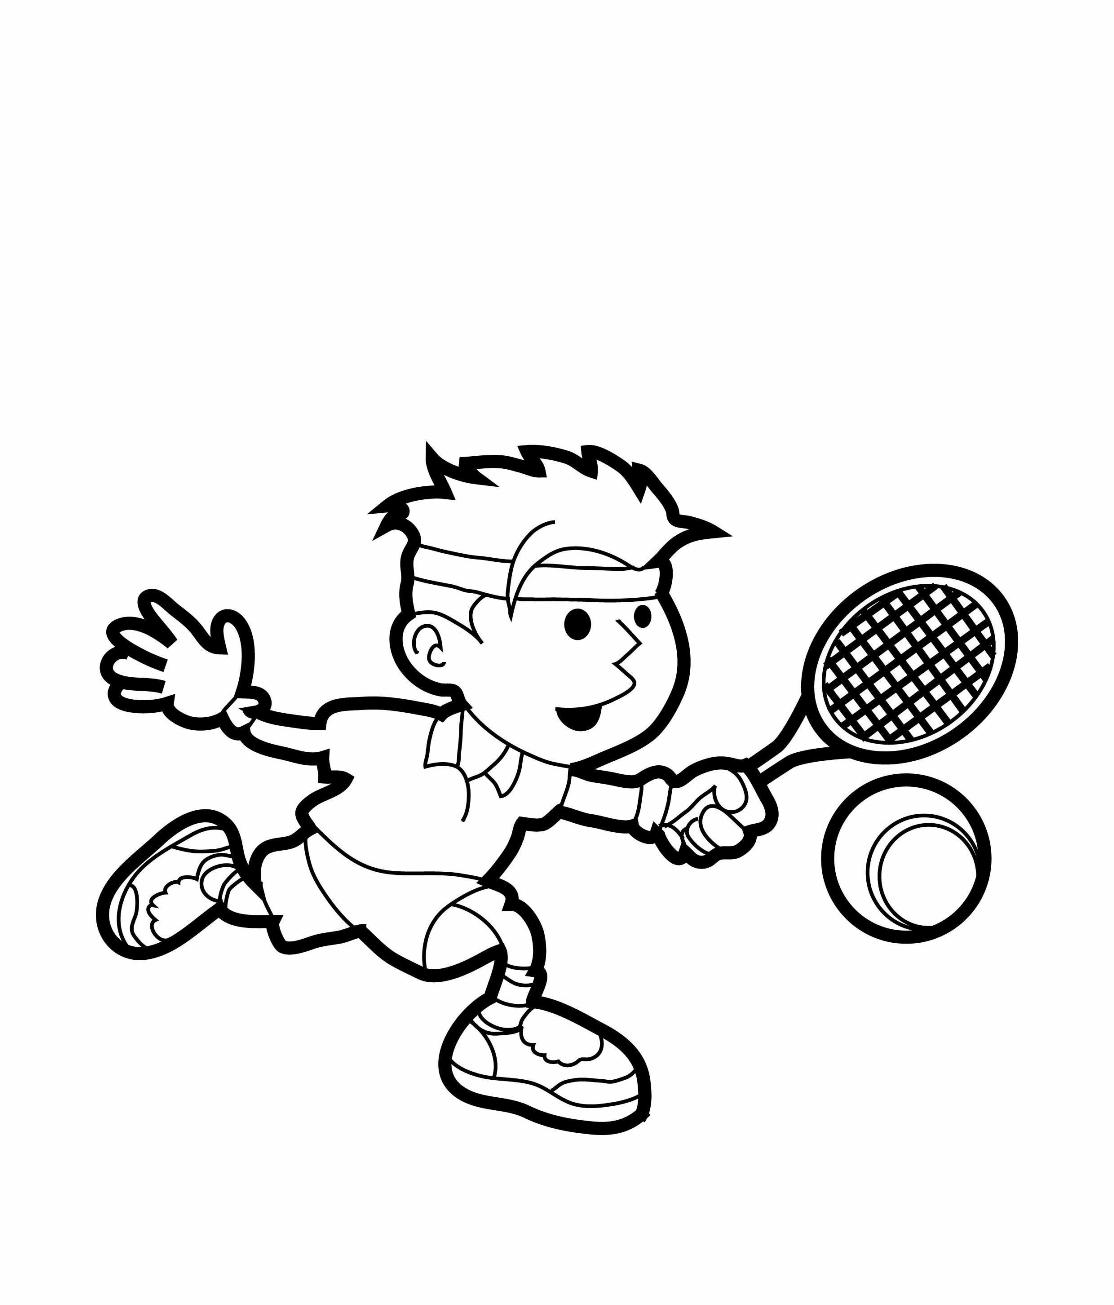 sports colouring pictures printable sports coloring page by xolp on etsy pictures colouring sports